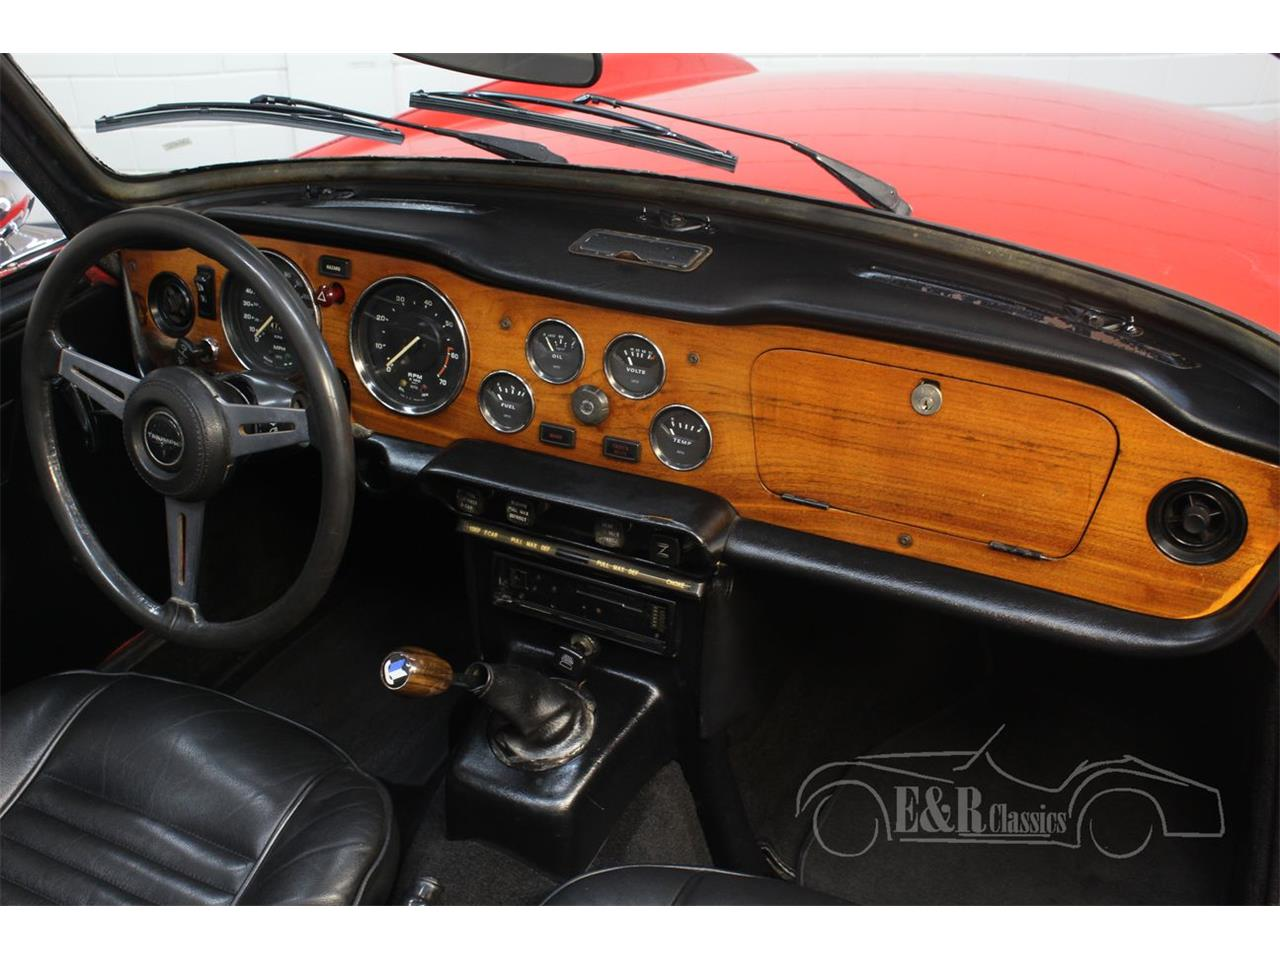 Large Picture of '73 TR6 located in Waalwijk Noord Brabant - $25,800.00 Offered by E & R Classics - PWMQ